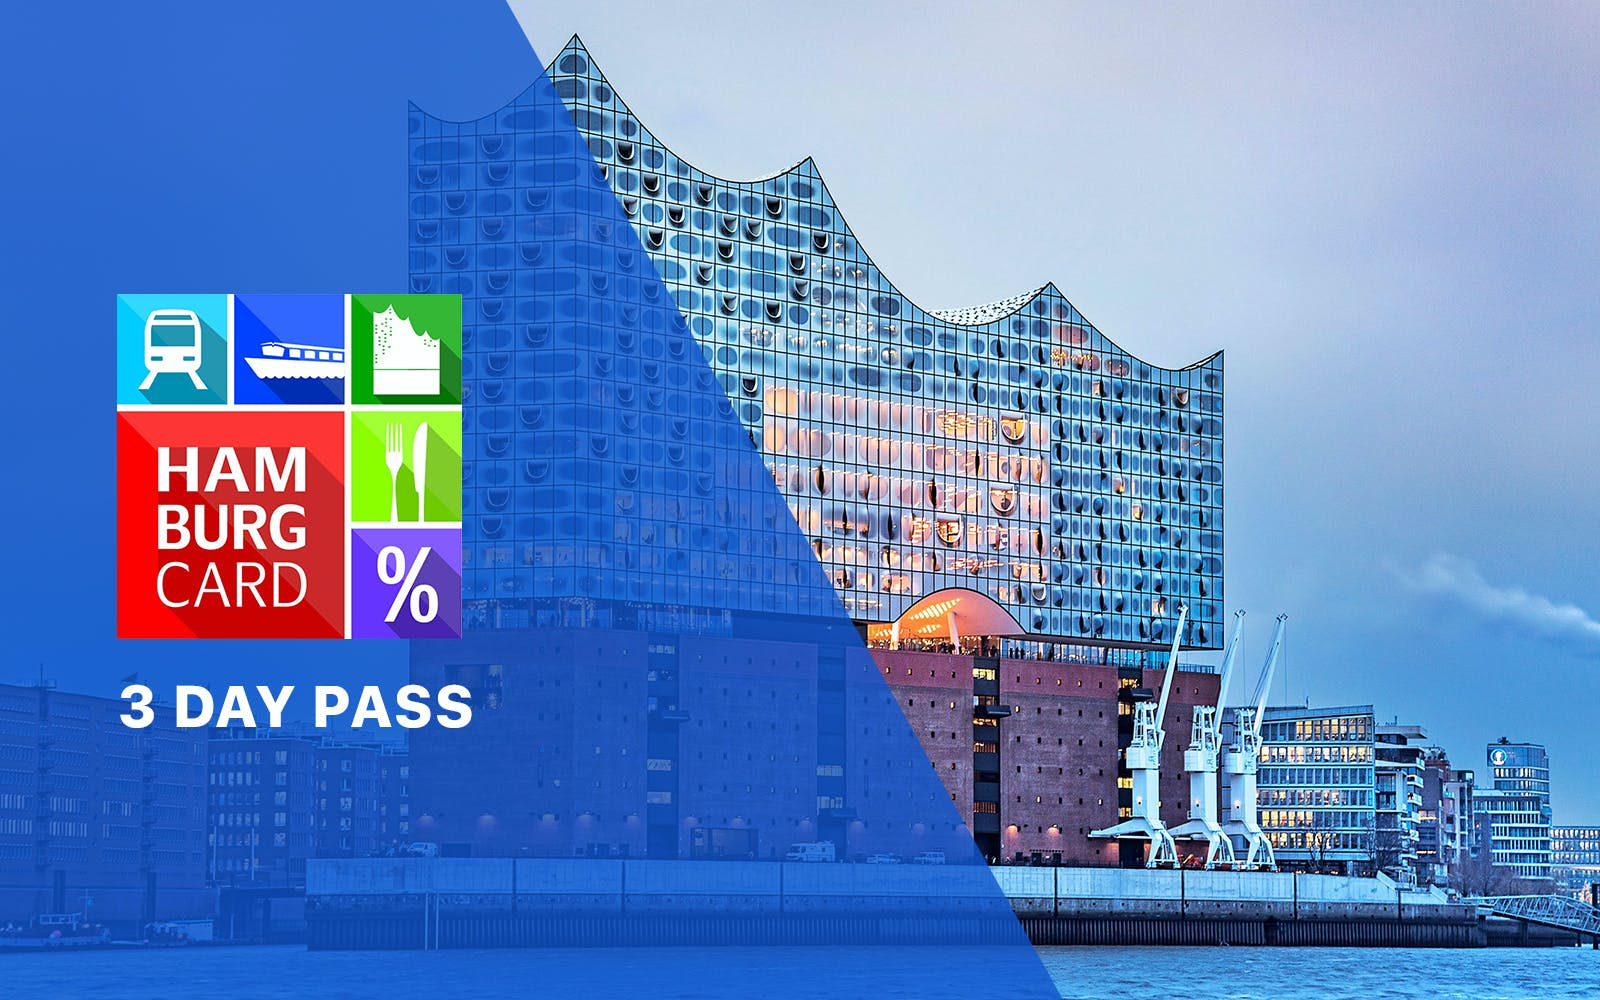 Hamburg Card - 3 day pass